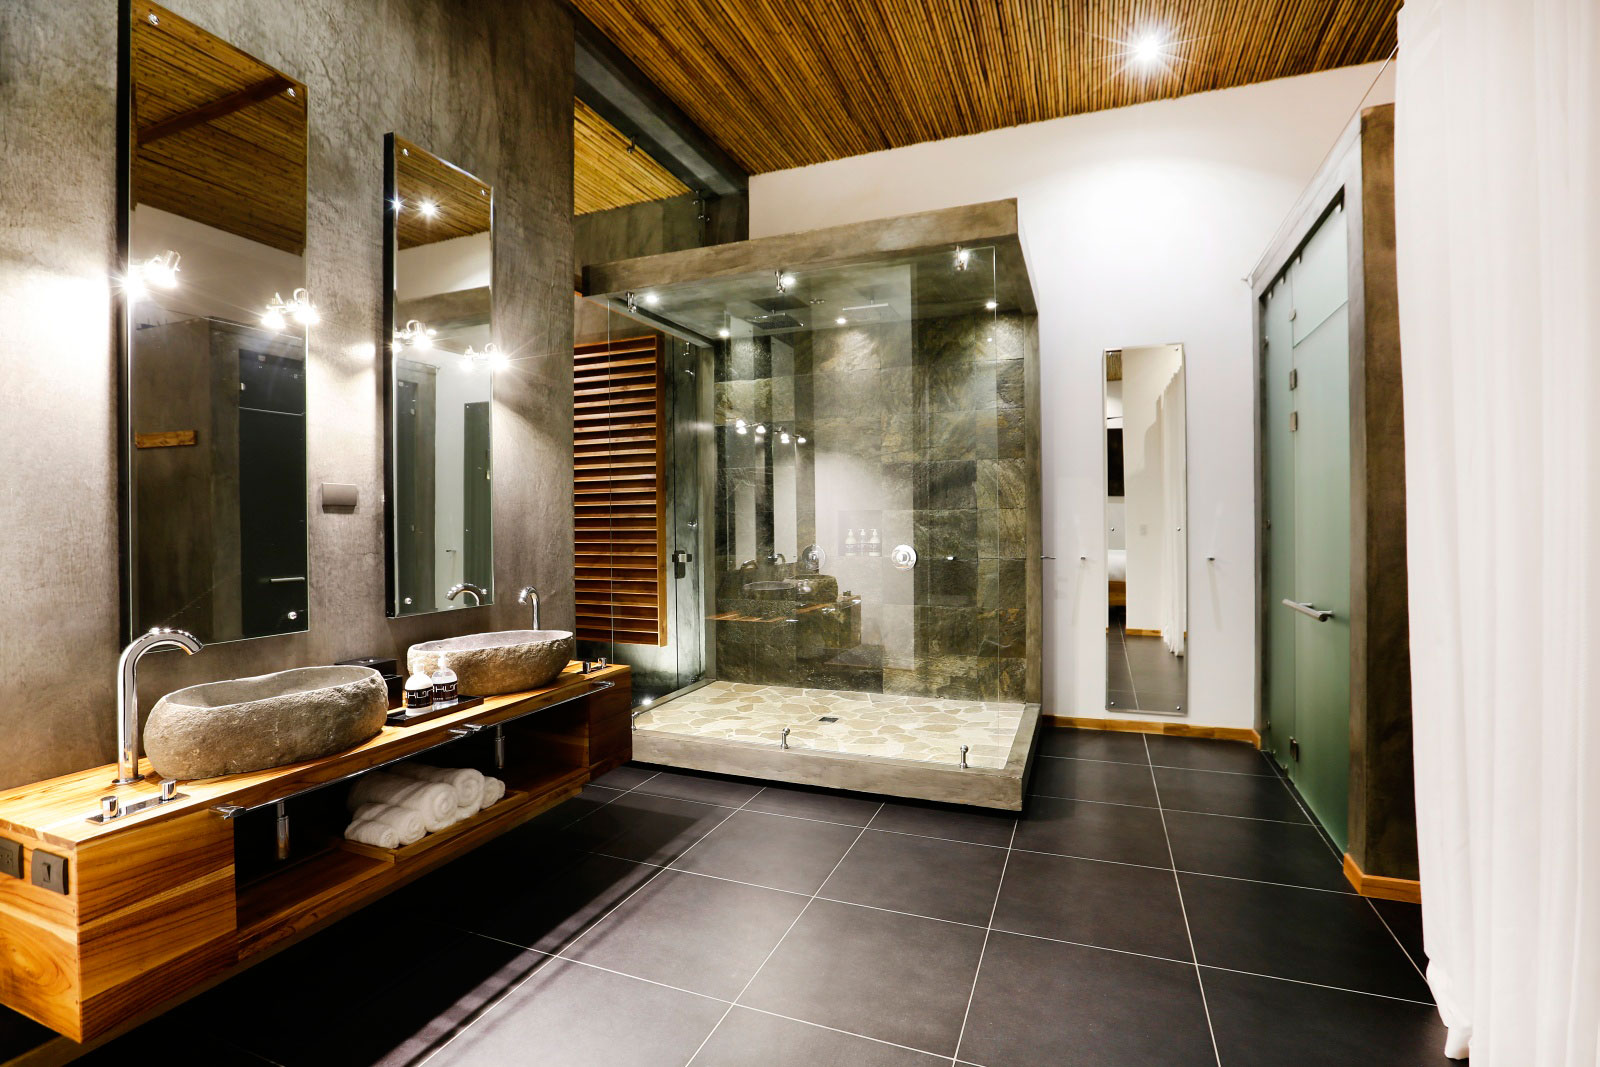 Glass Shower, Natural Stone Sinks, Holiday Villas in Costa Rica